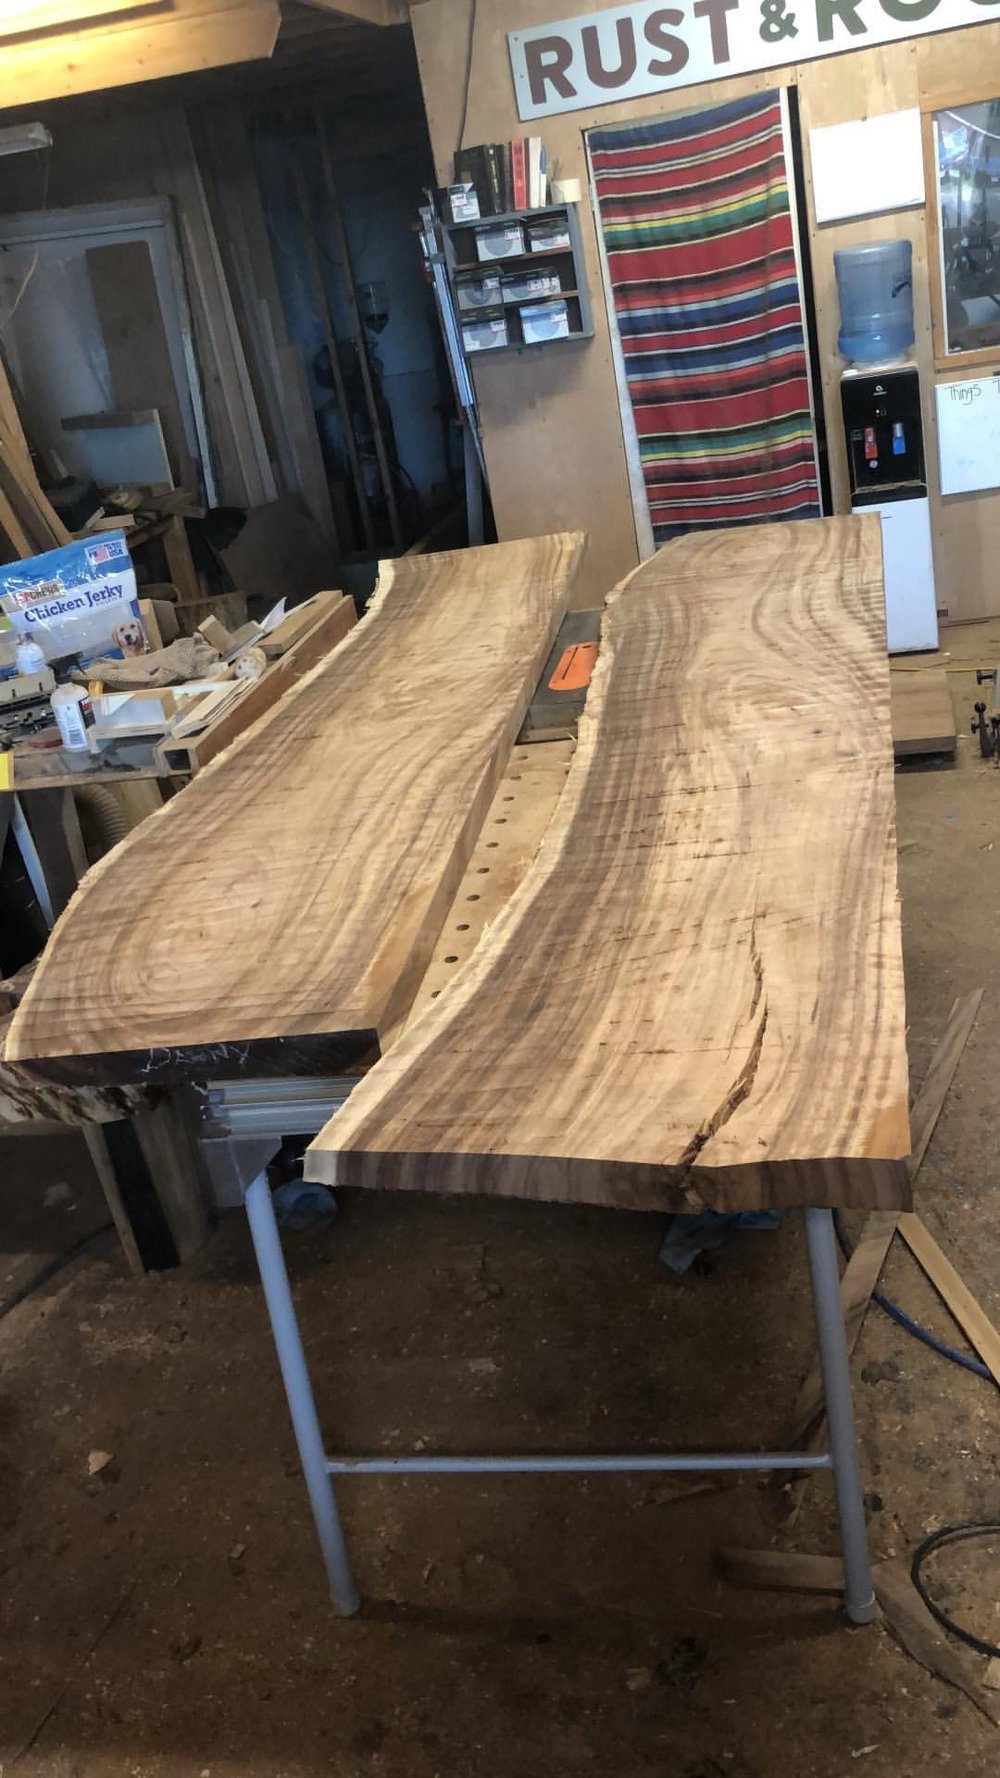 Two halves of the table sitting on my workbench. Although they're not that large, these slabs are still heavy to flip and move around. Back still vaguely sore.